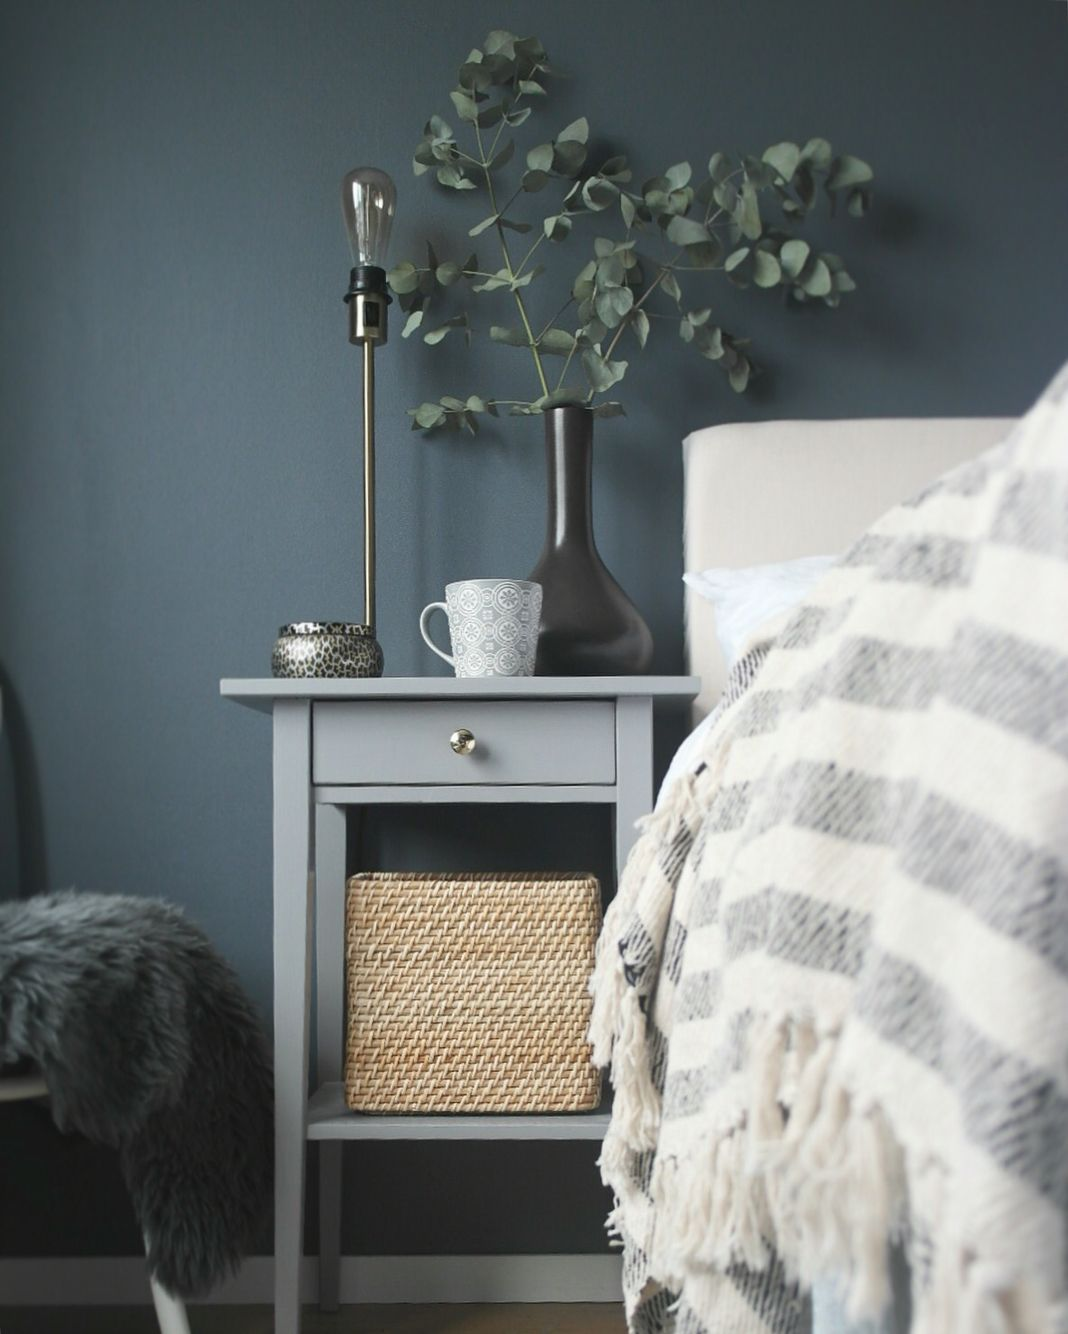 Bedroom Wall Decor Ikea Bedroom Under Window Cute Anime Bedroom Blue And Brown Bedroom Ideas: Our Bedroom With Dark Walls And Ikea Hemnes Bedside Table